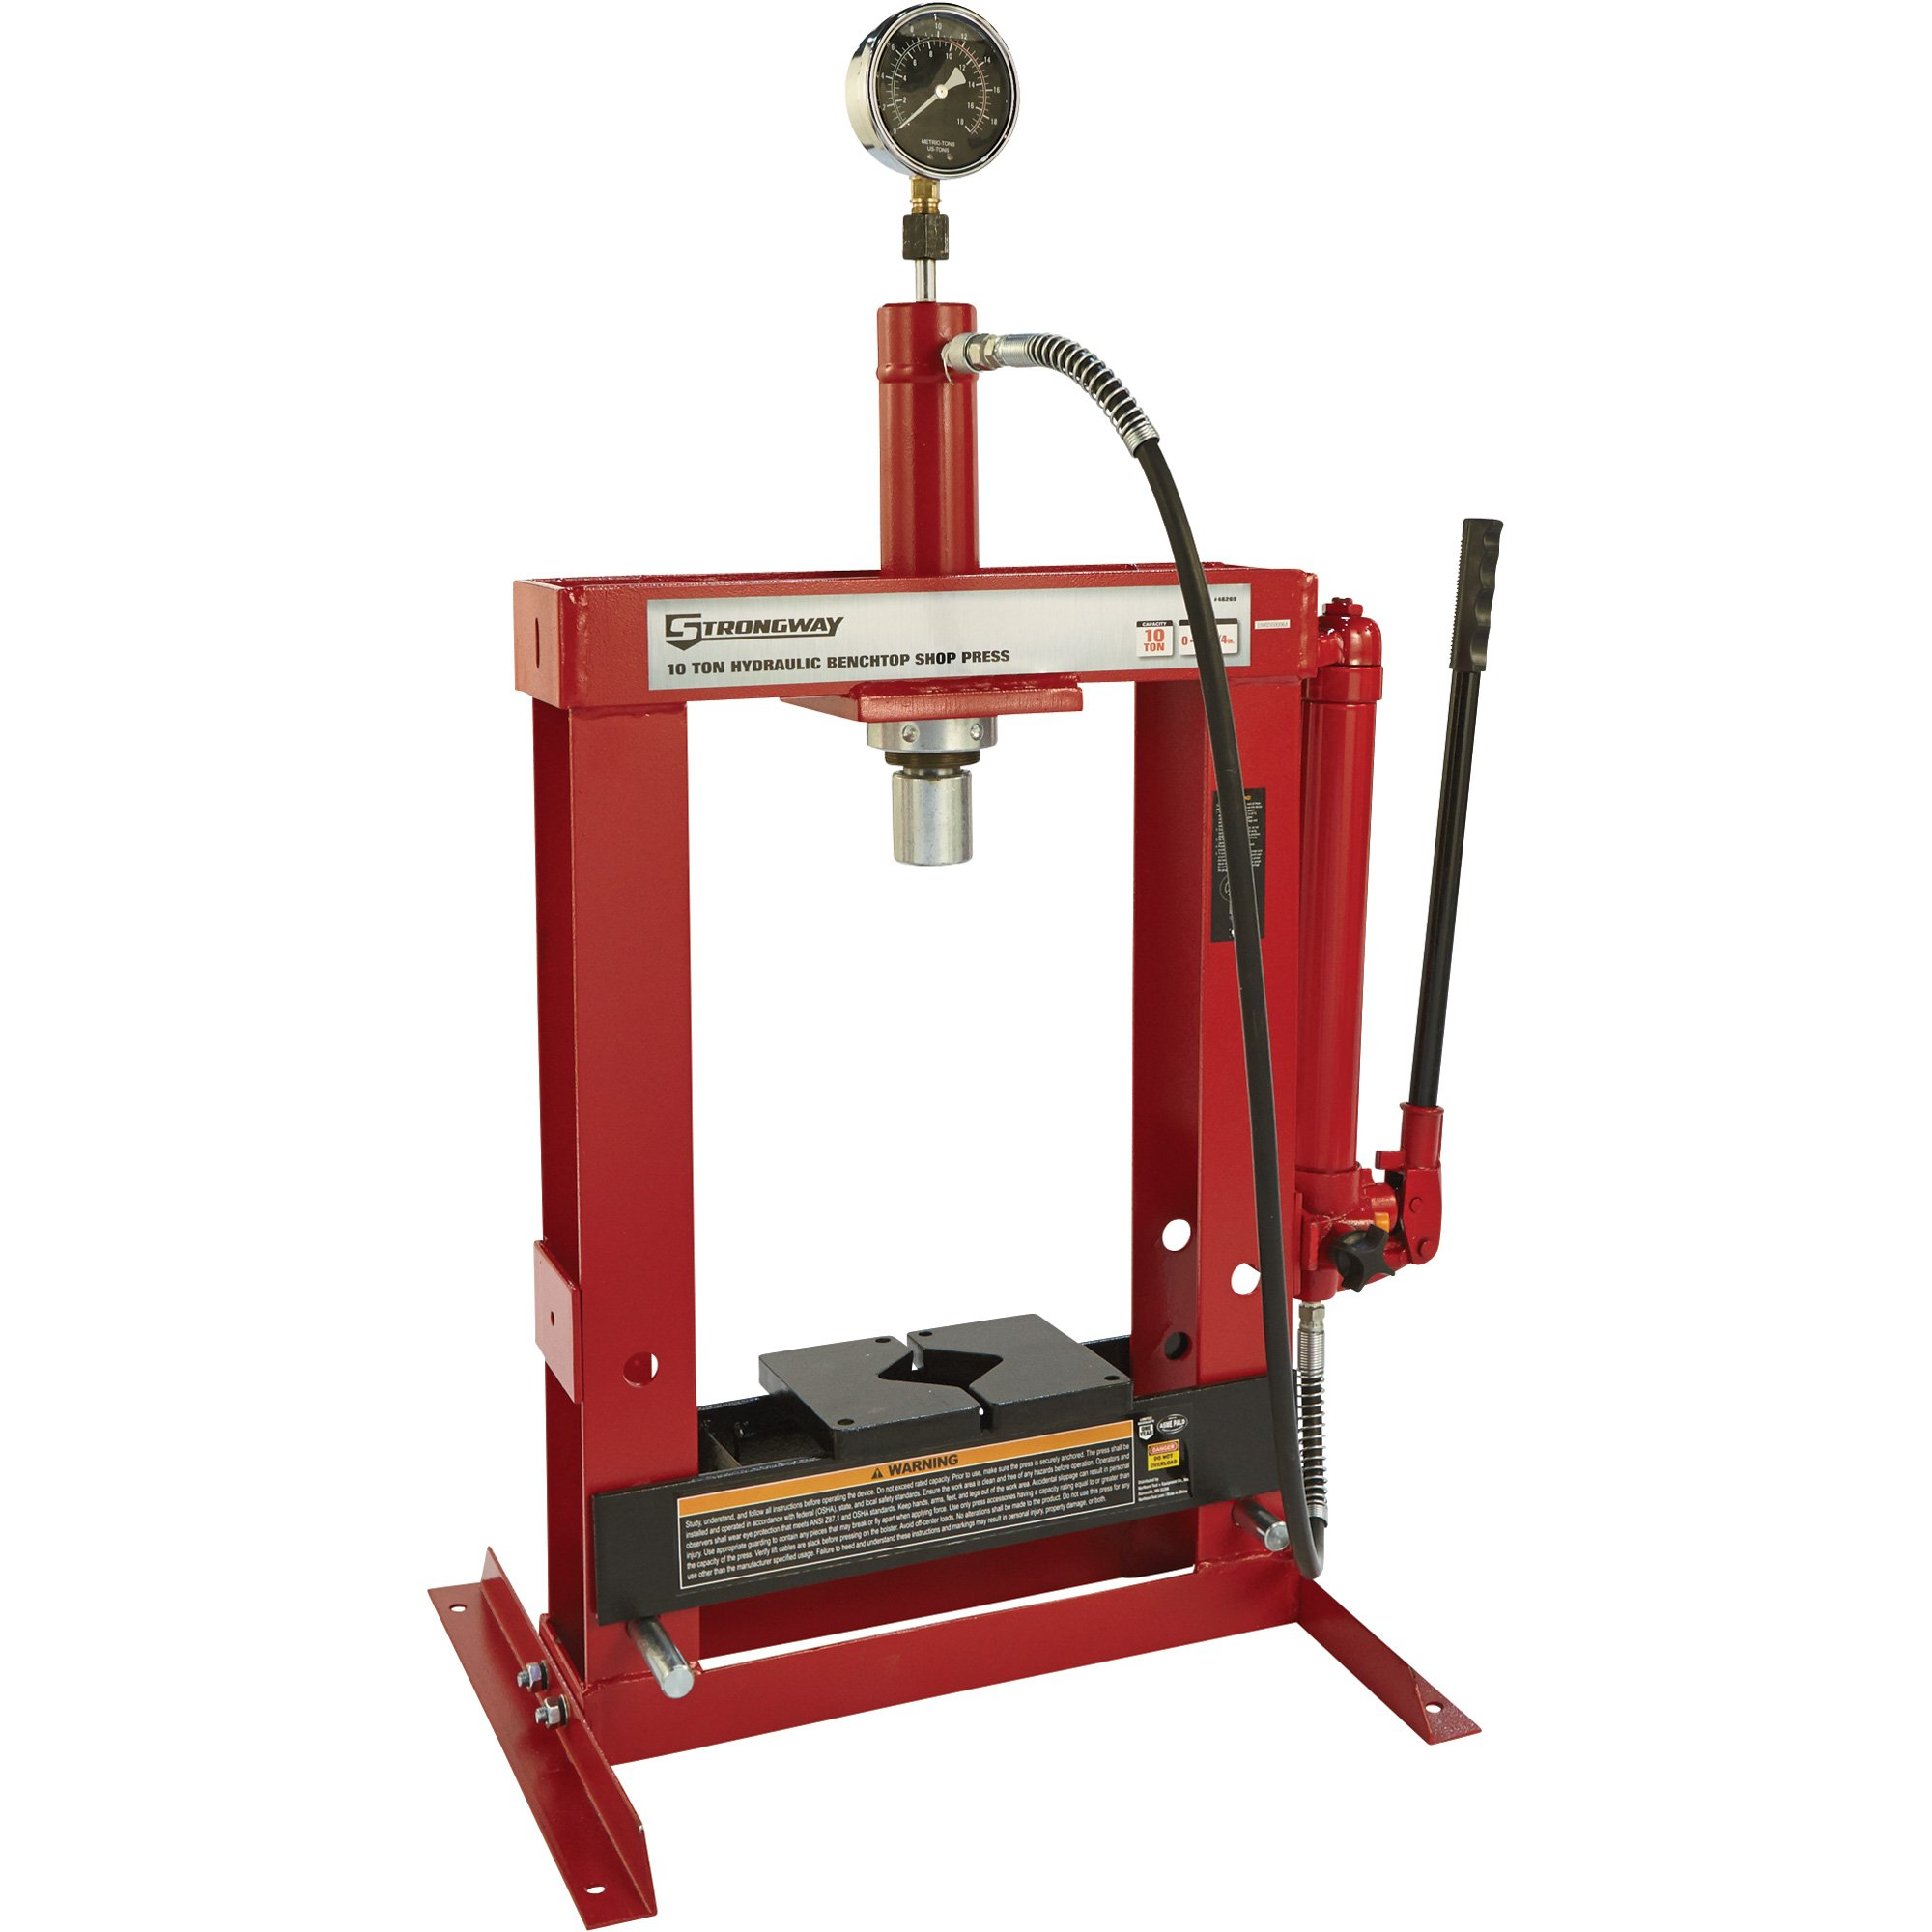 Strongway Hydraulic Shop Press with Gauge - 10-Ton Capacity by Strongway (Image #2)